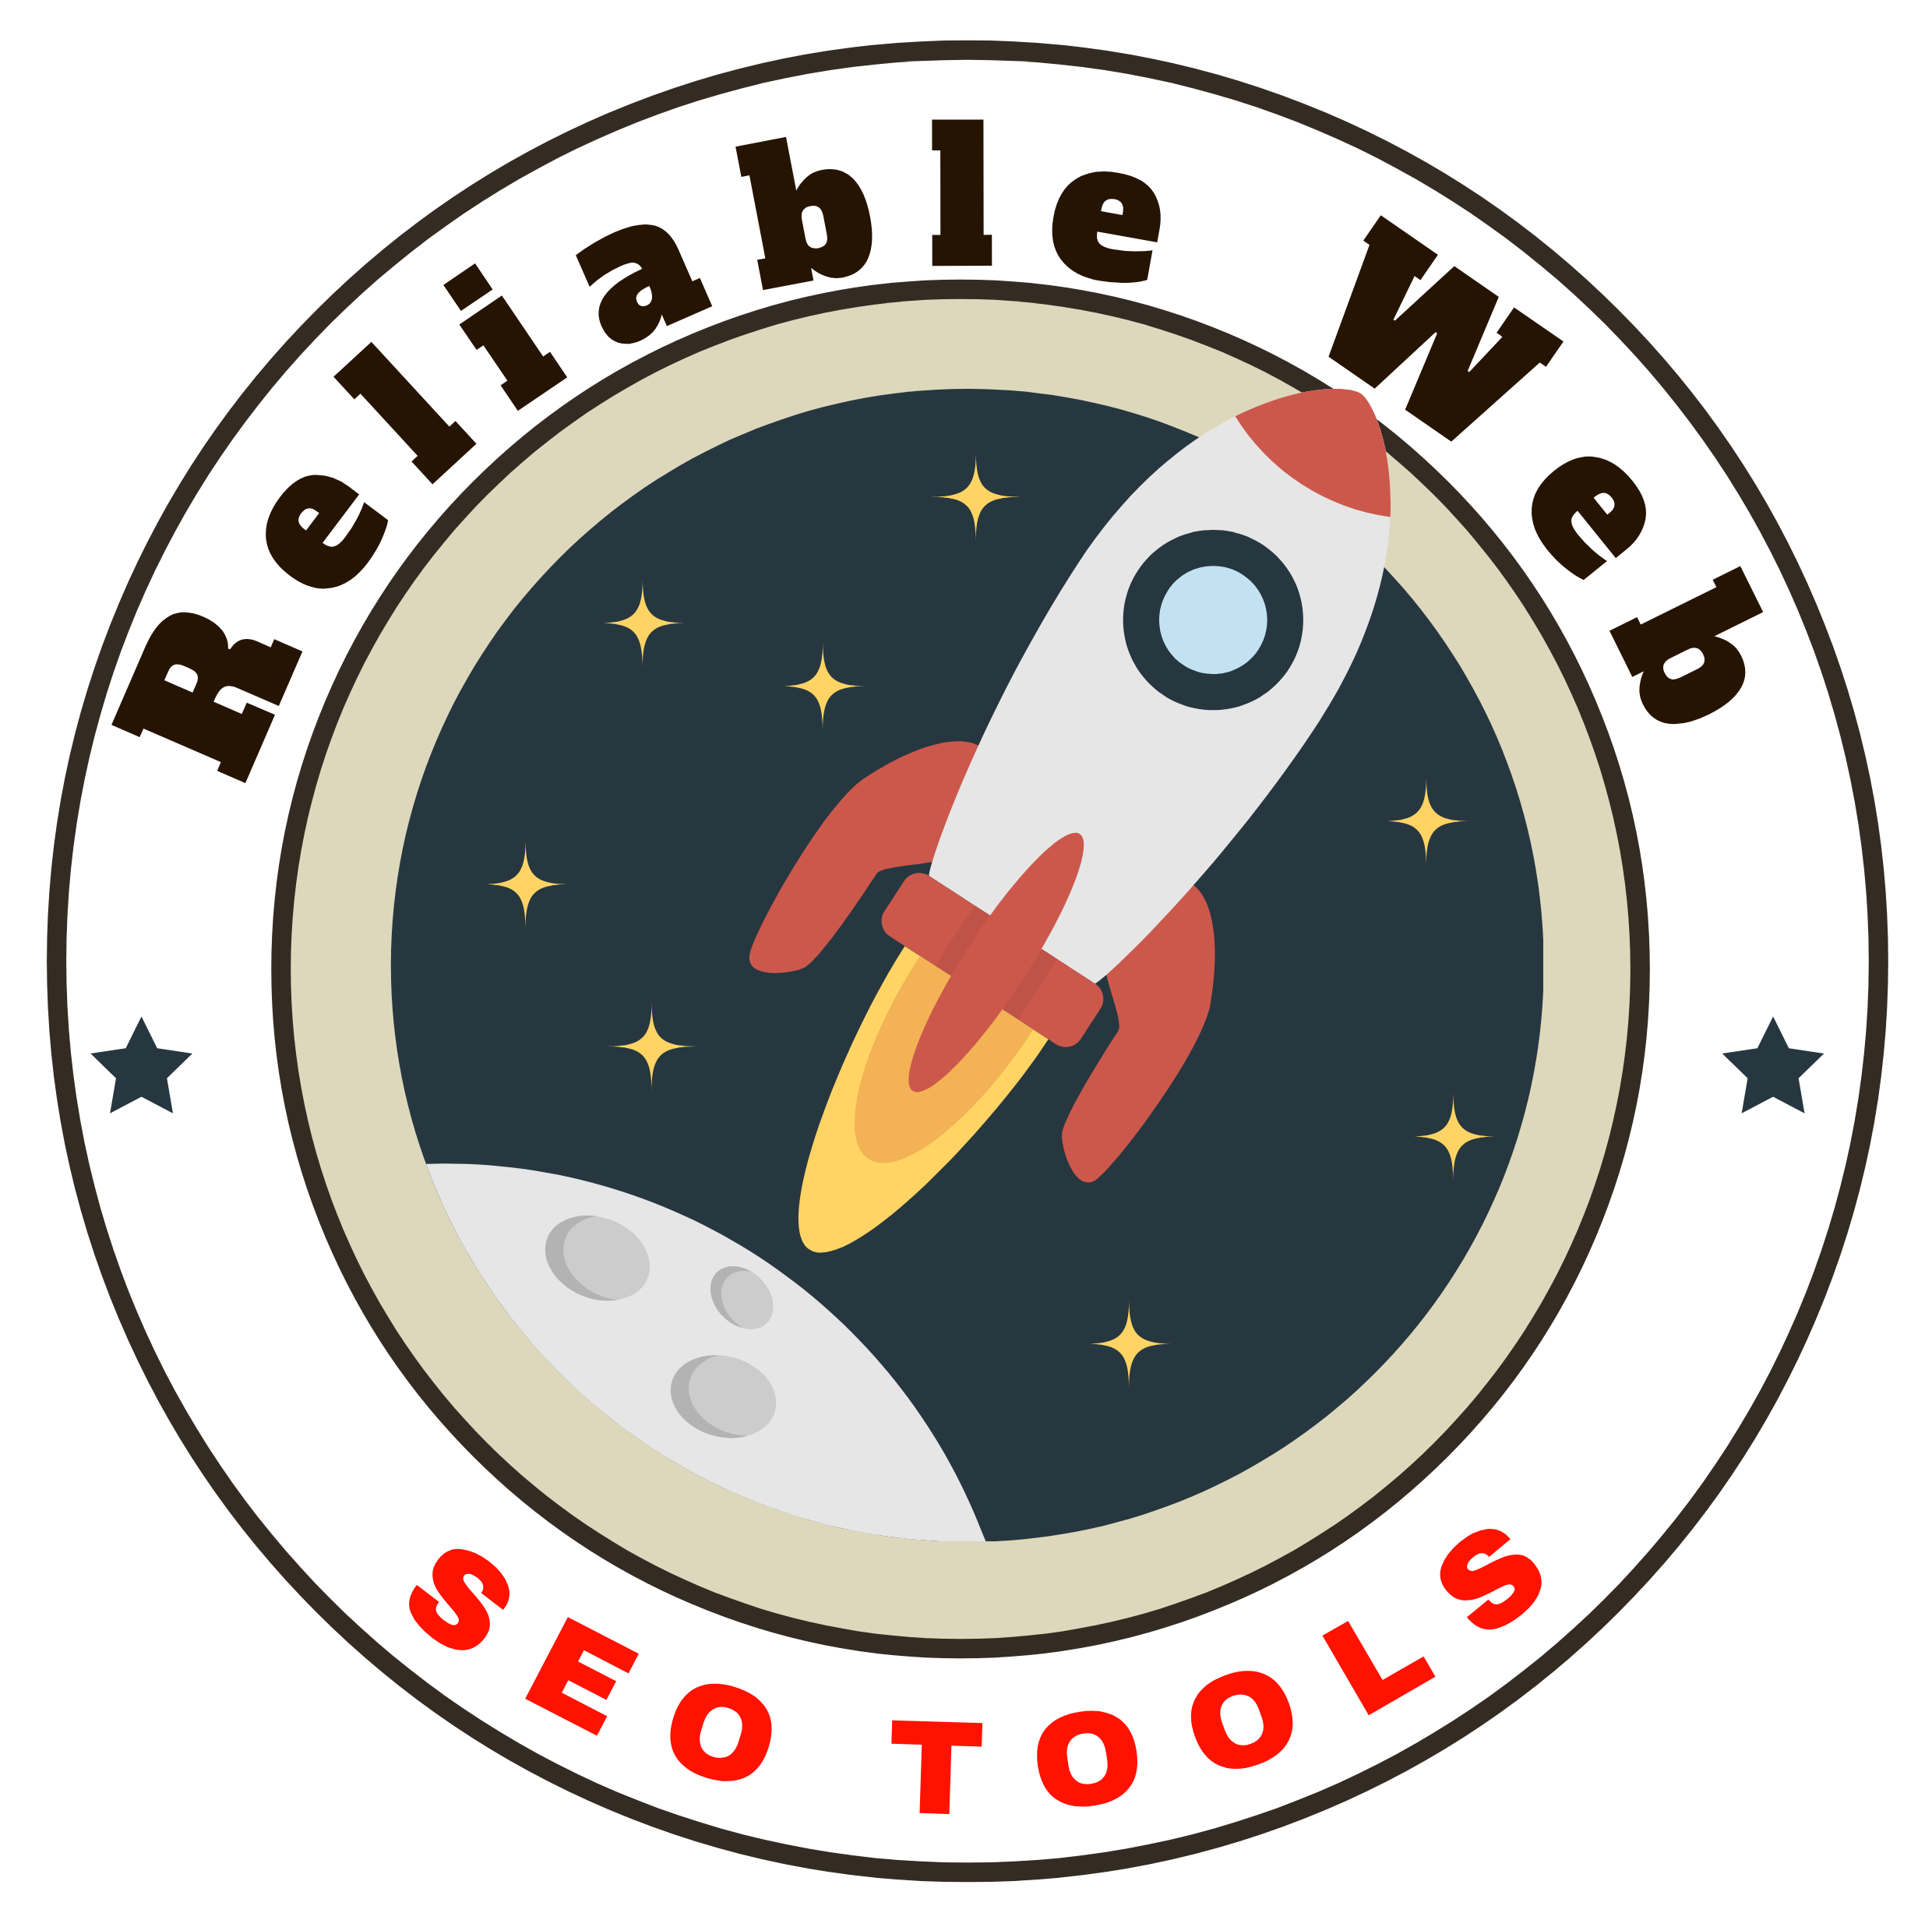 Reliable Web - Website Reviewer